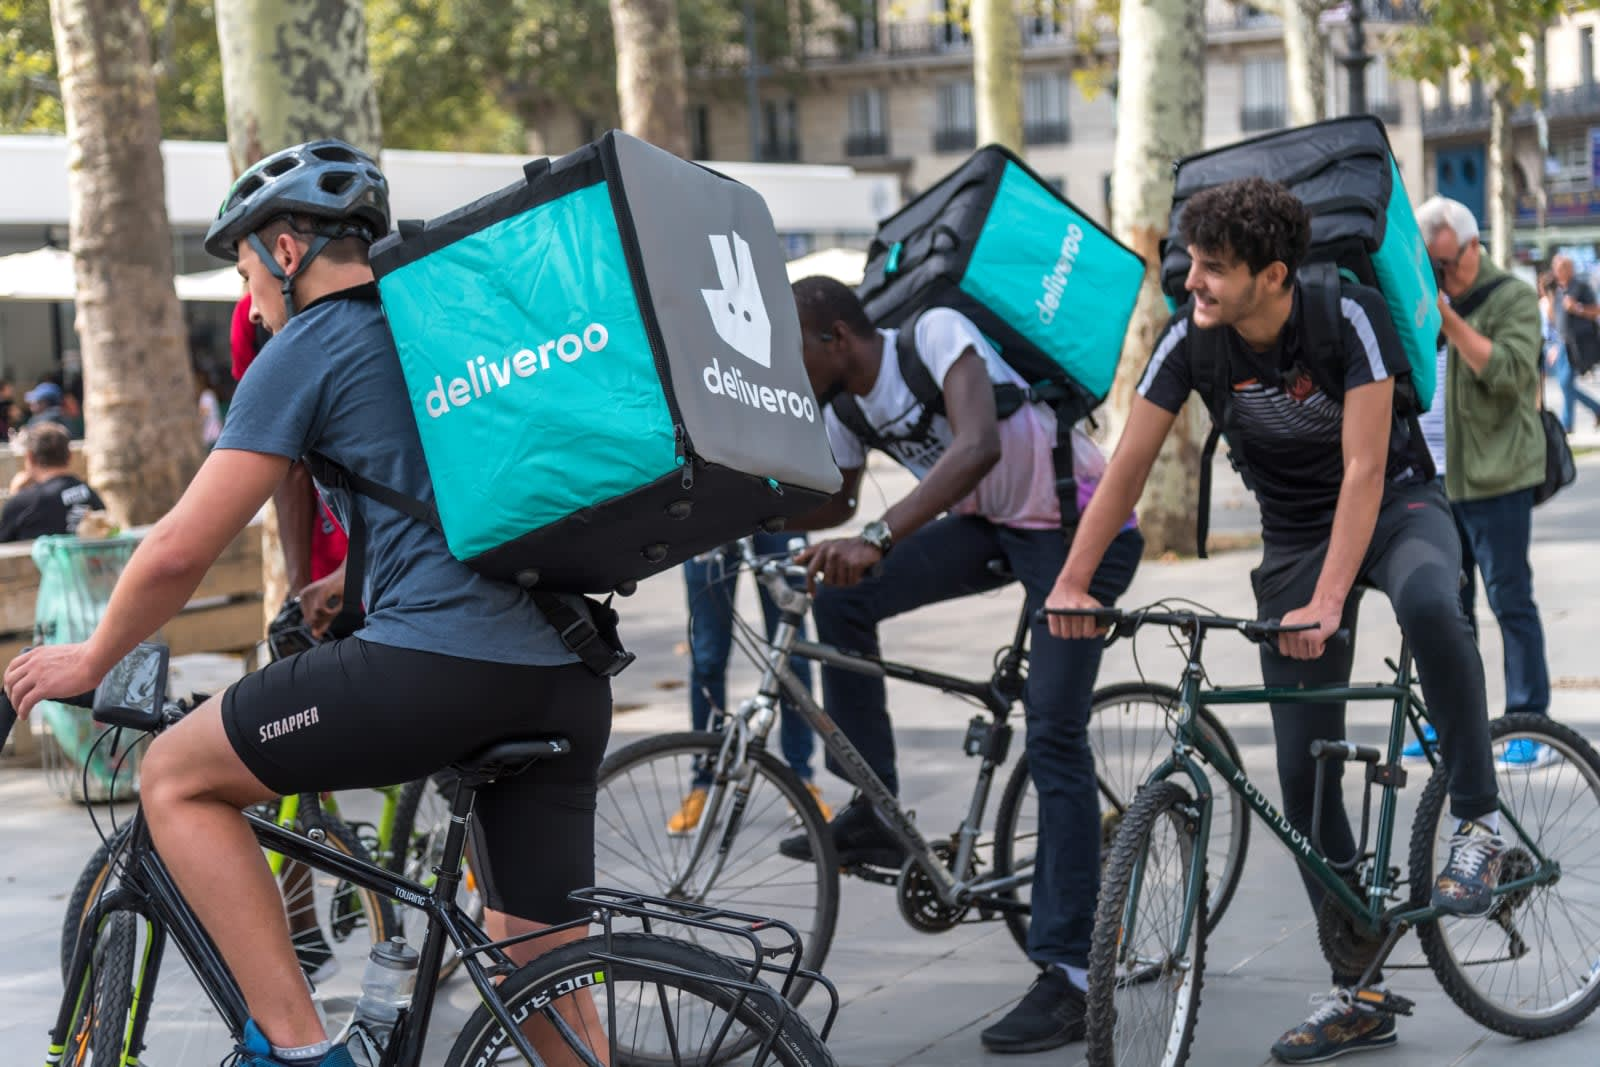 UK parliamentary groups demand more rights for gig economy workers